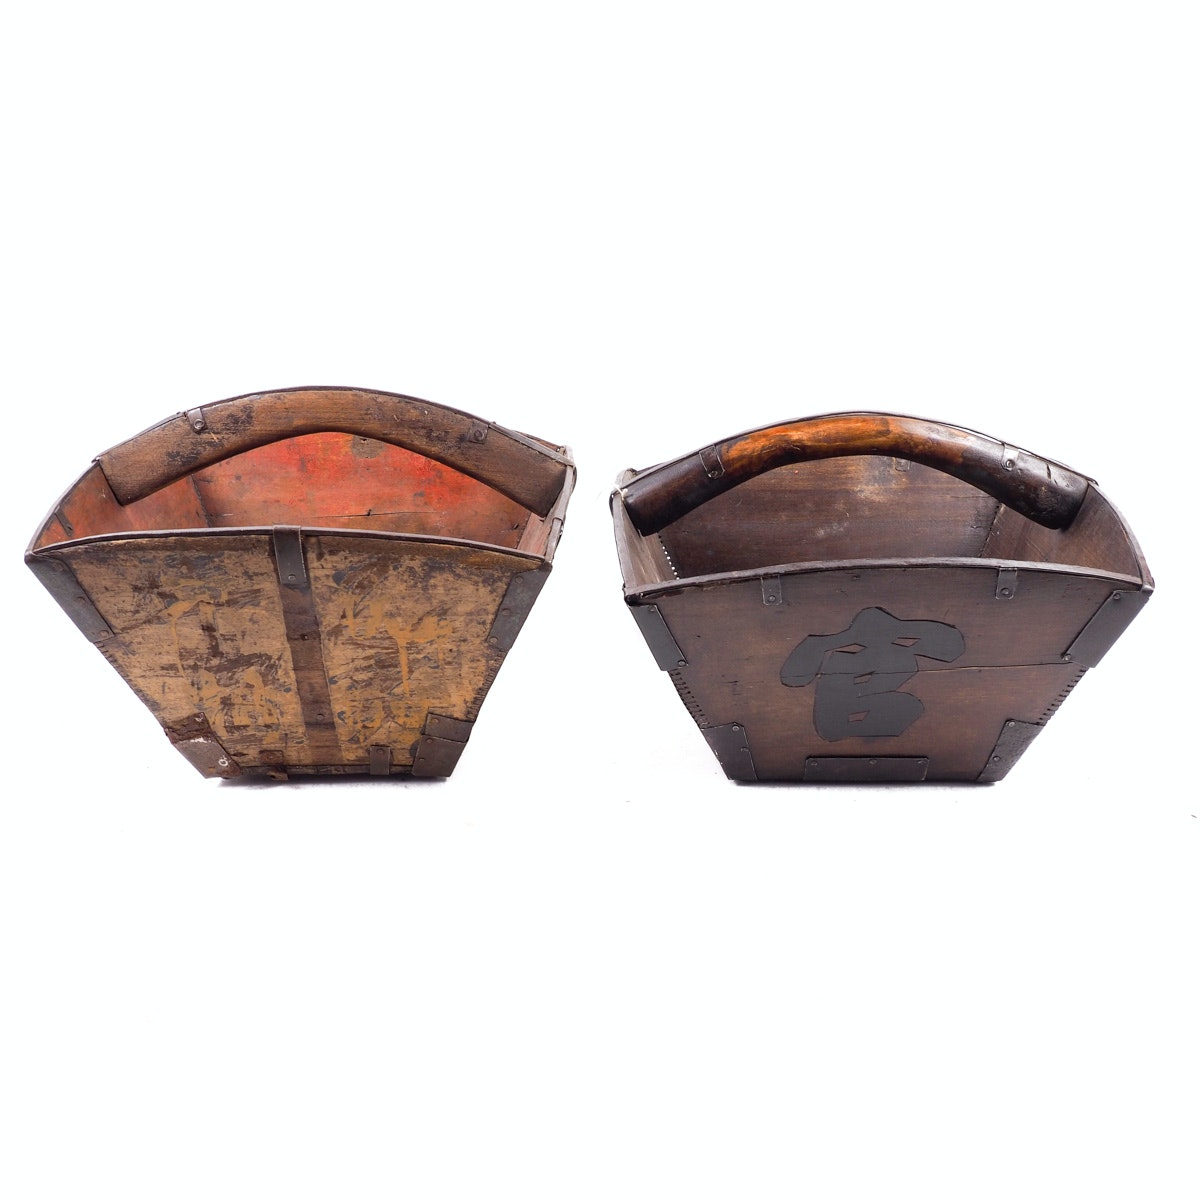 Two Antique Wooden Rice Baskets